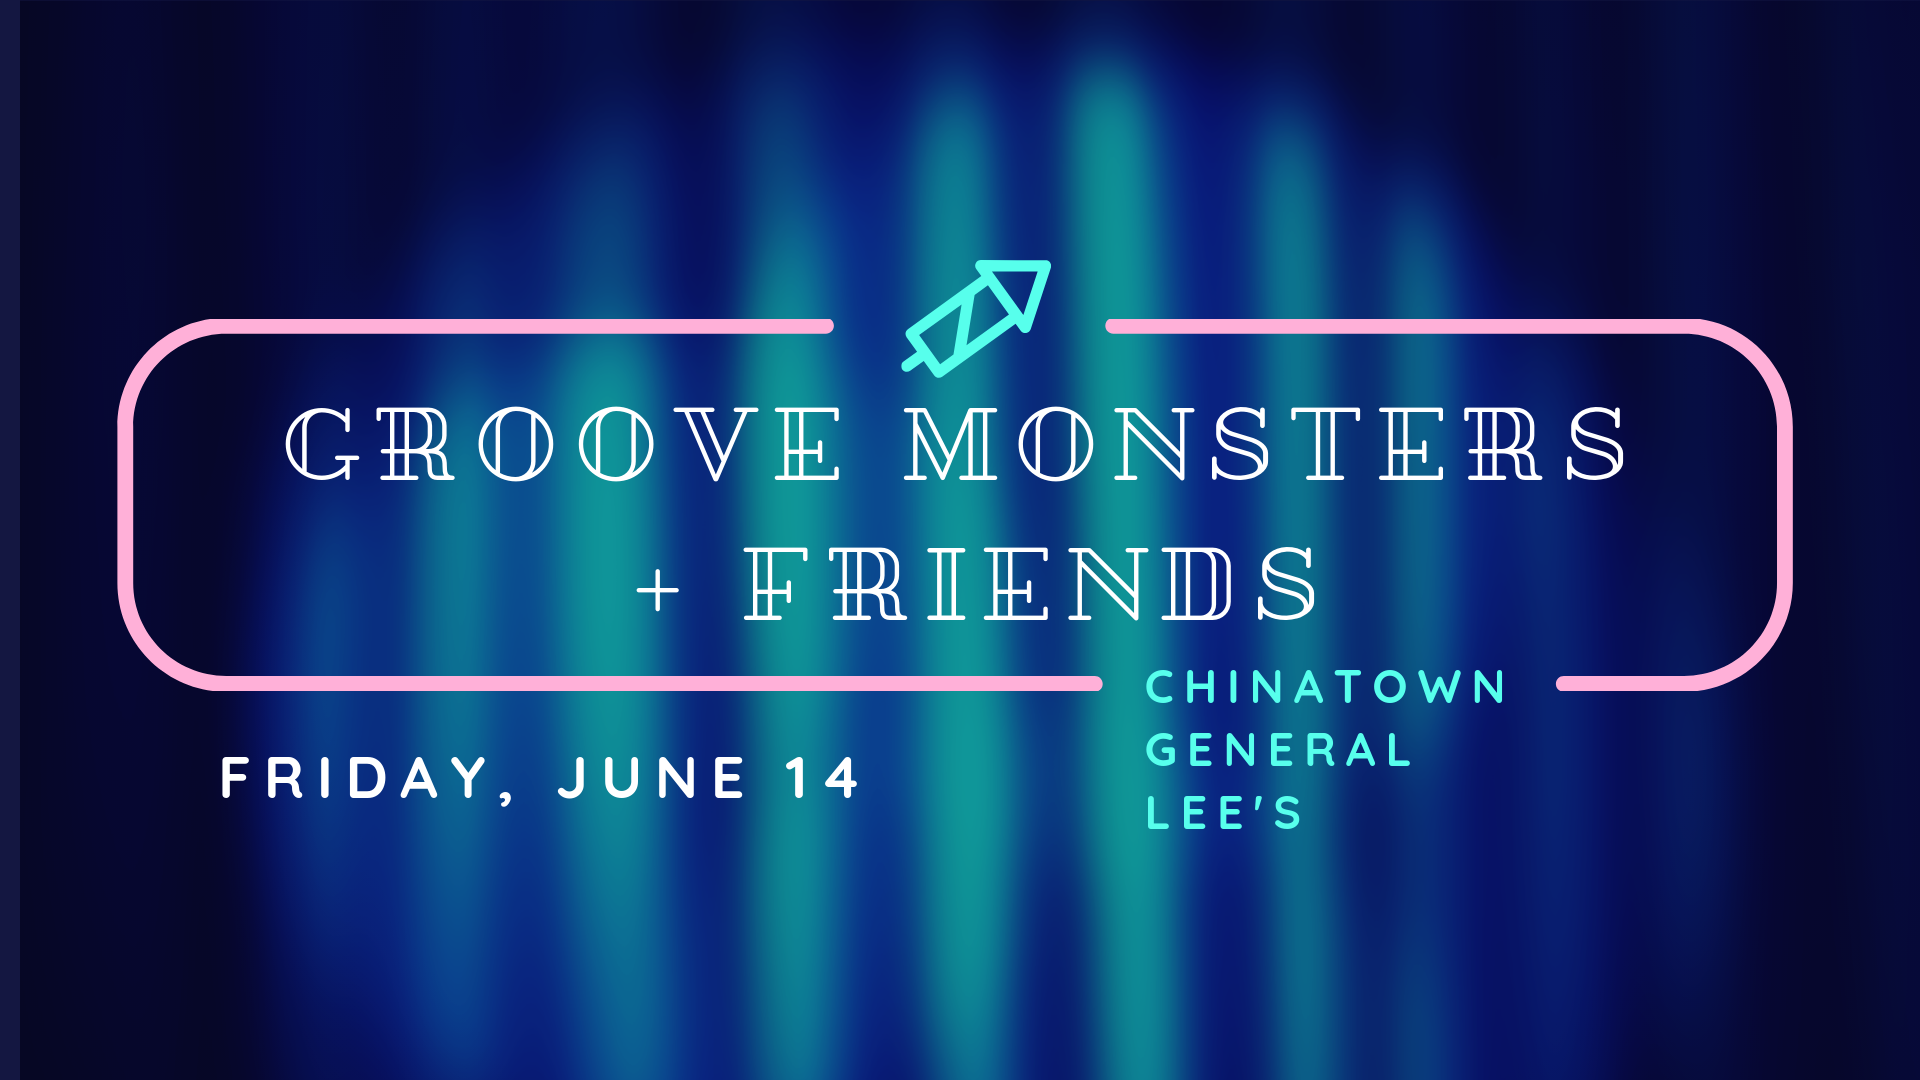 Groove monsters + friends (1).png